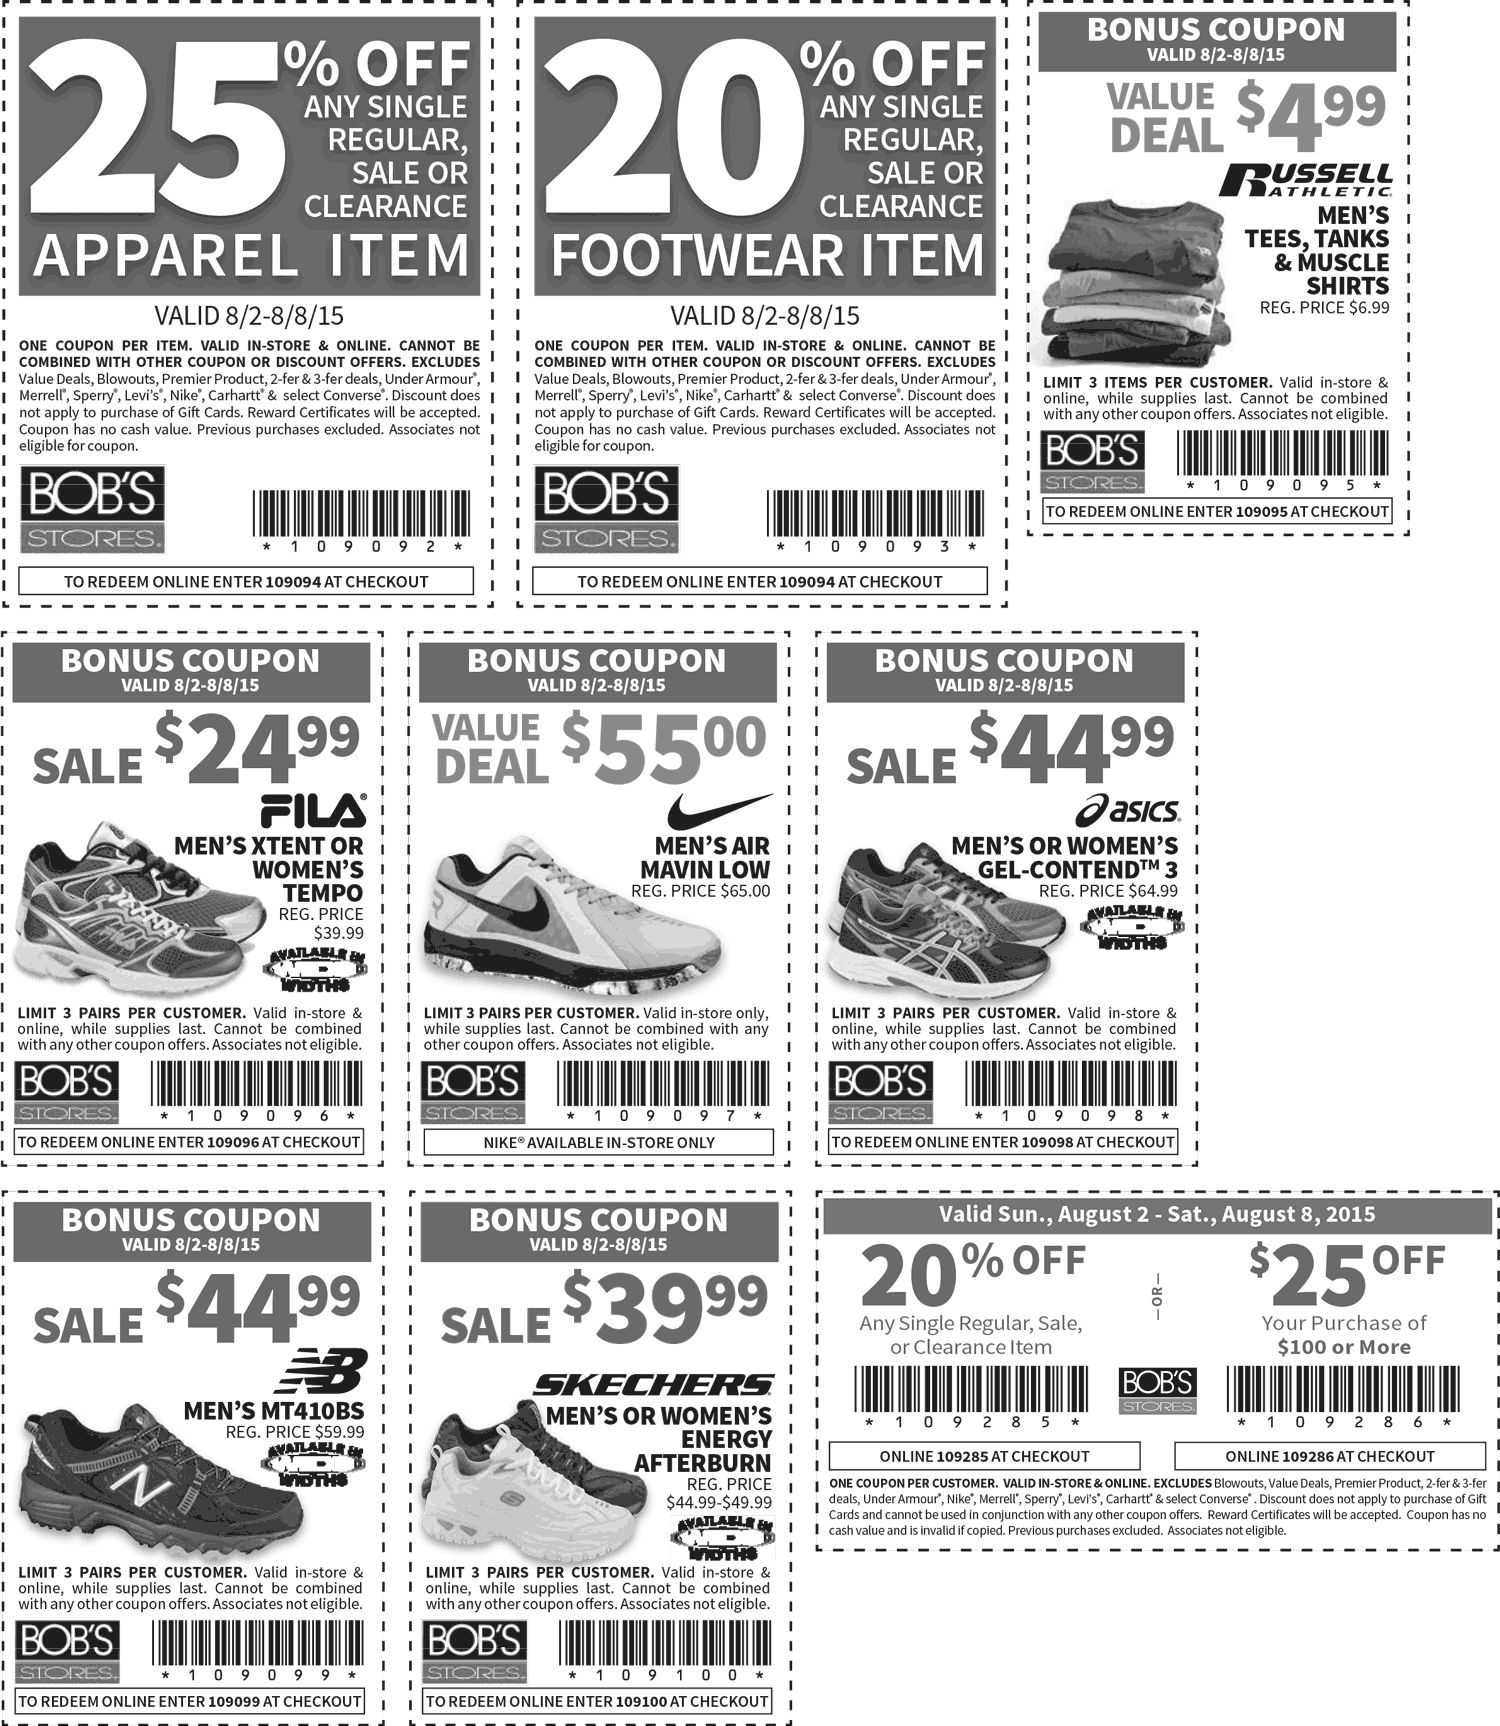 Bobs Stores Coupon March 2018 25% off a single item & more at Bobs Stores, or online via promo code 109094